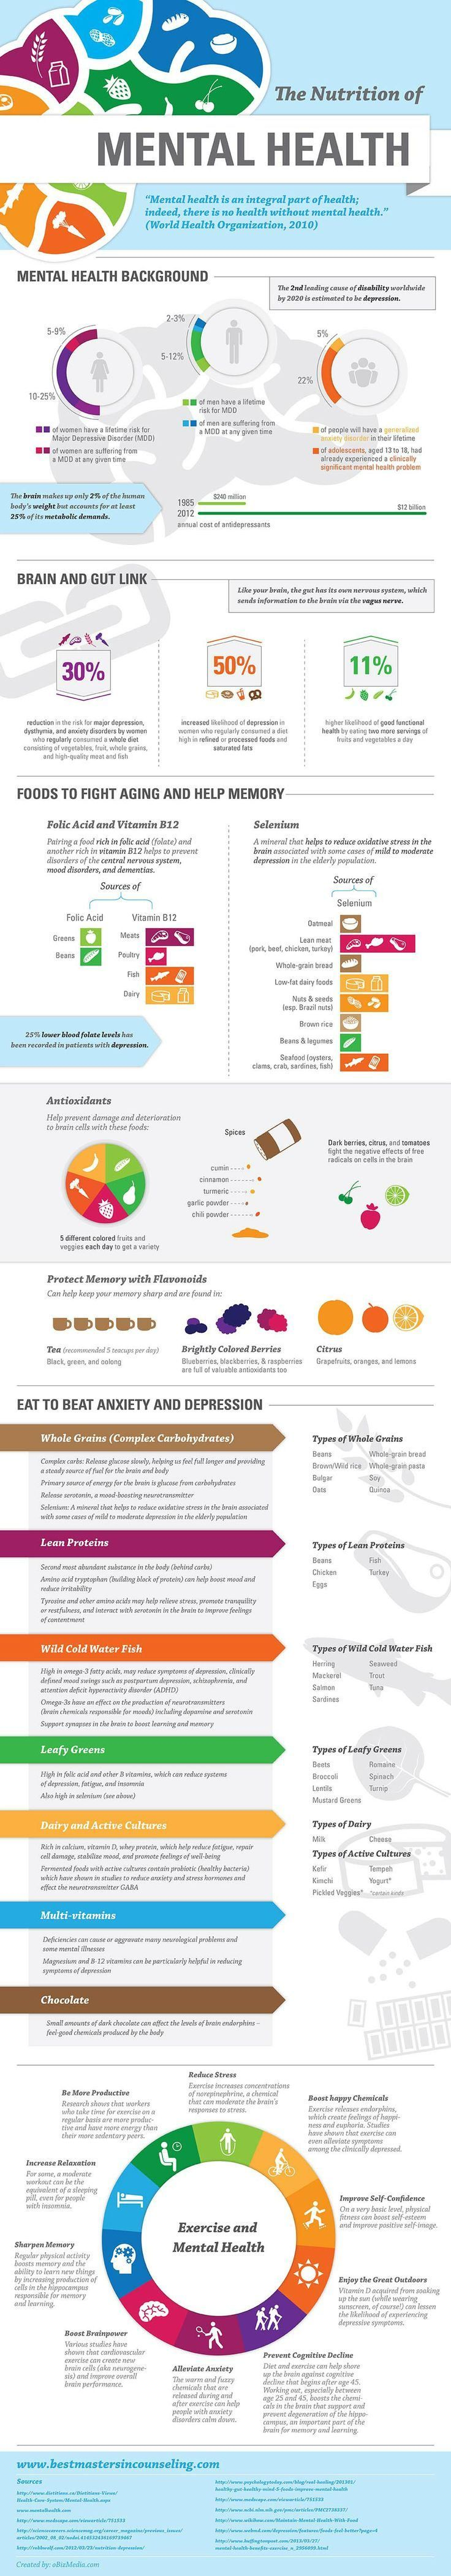 The Nutrition of Mental Health